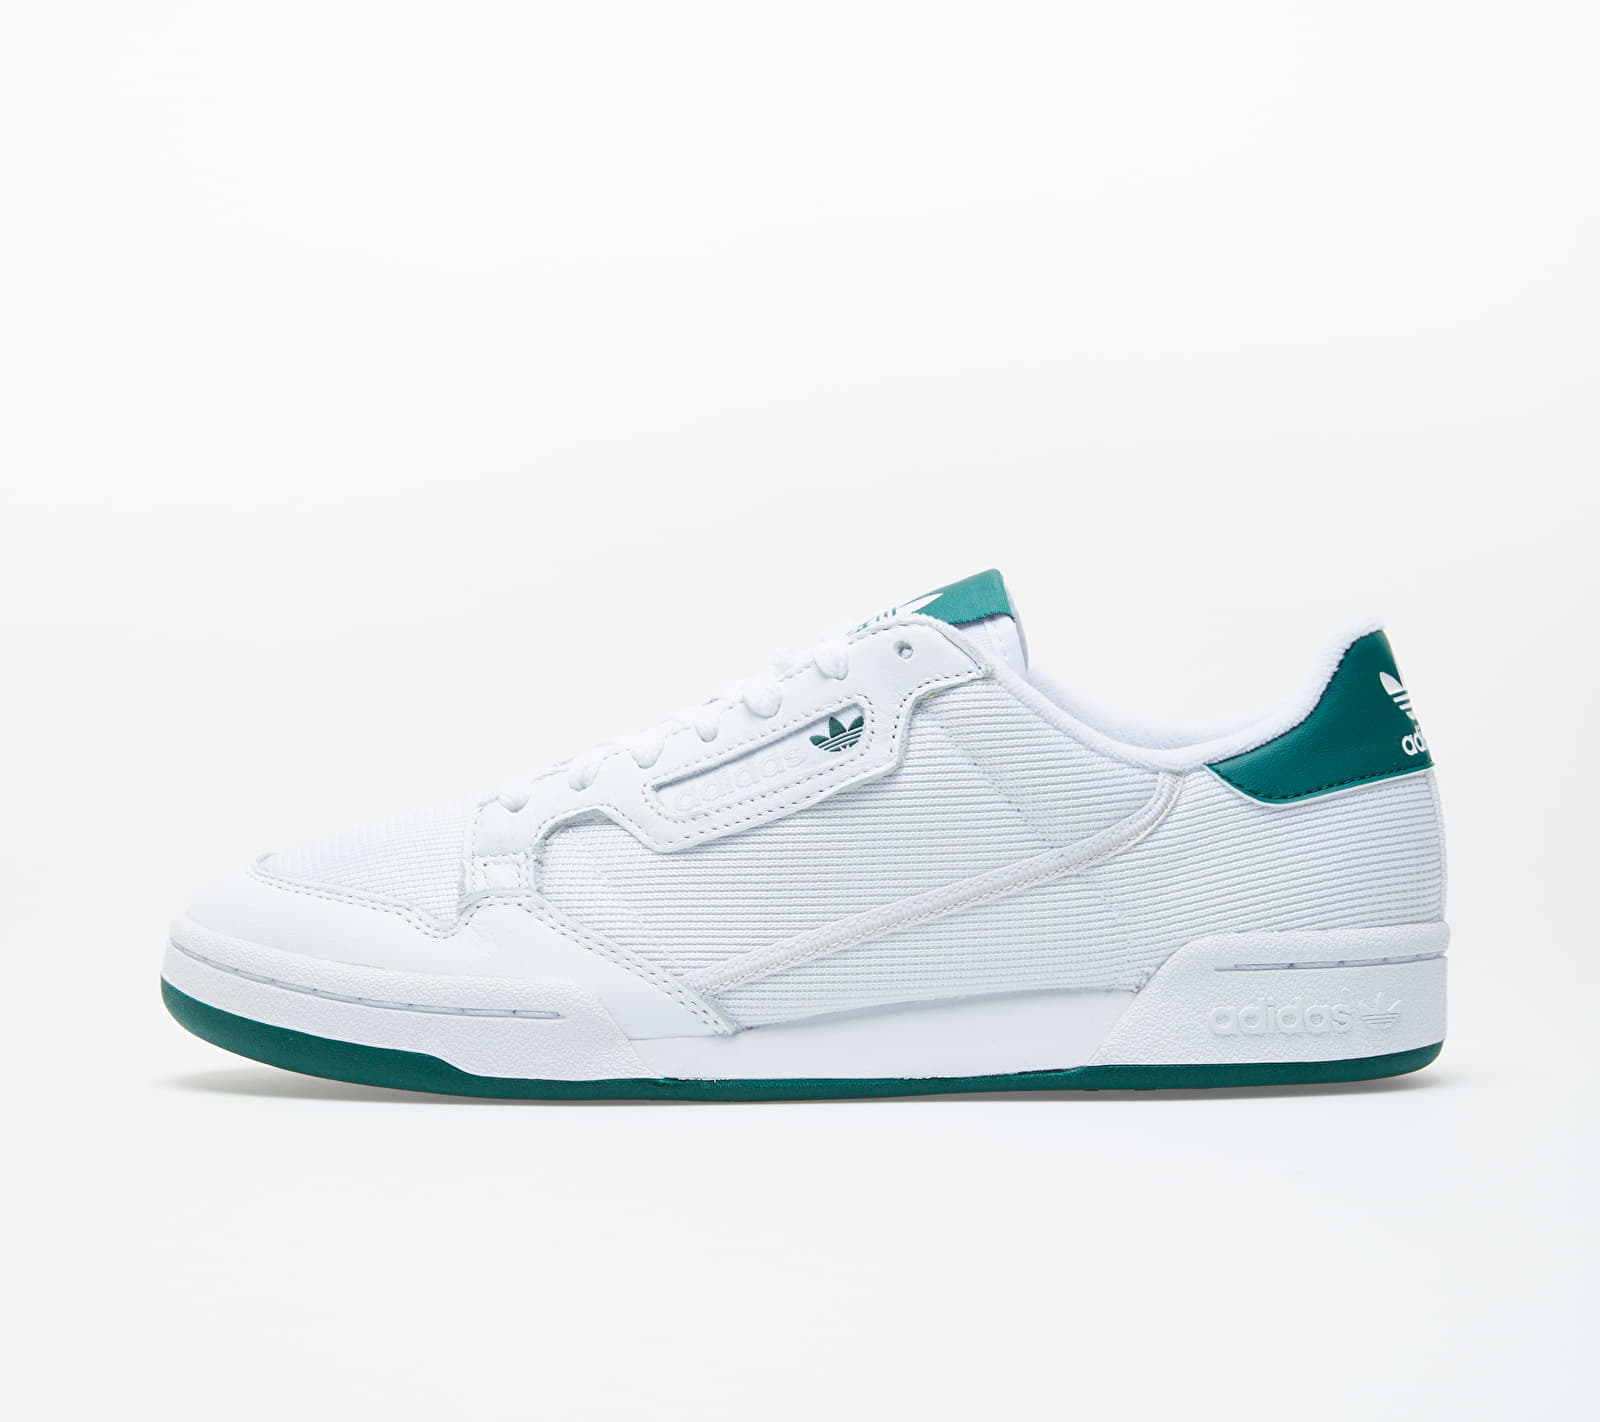 adidas Continental 80 Ftw White/ Grey One/ Core Green EF5995